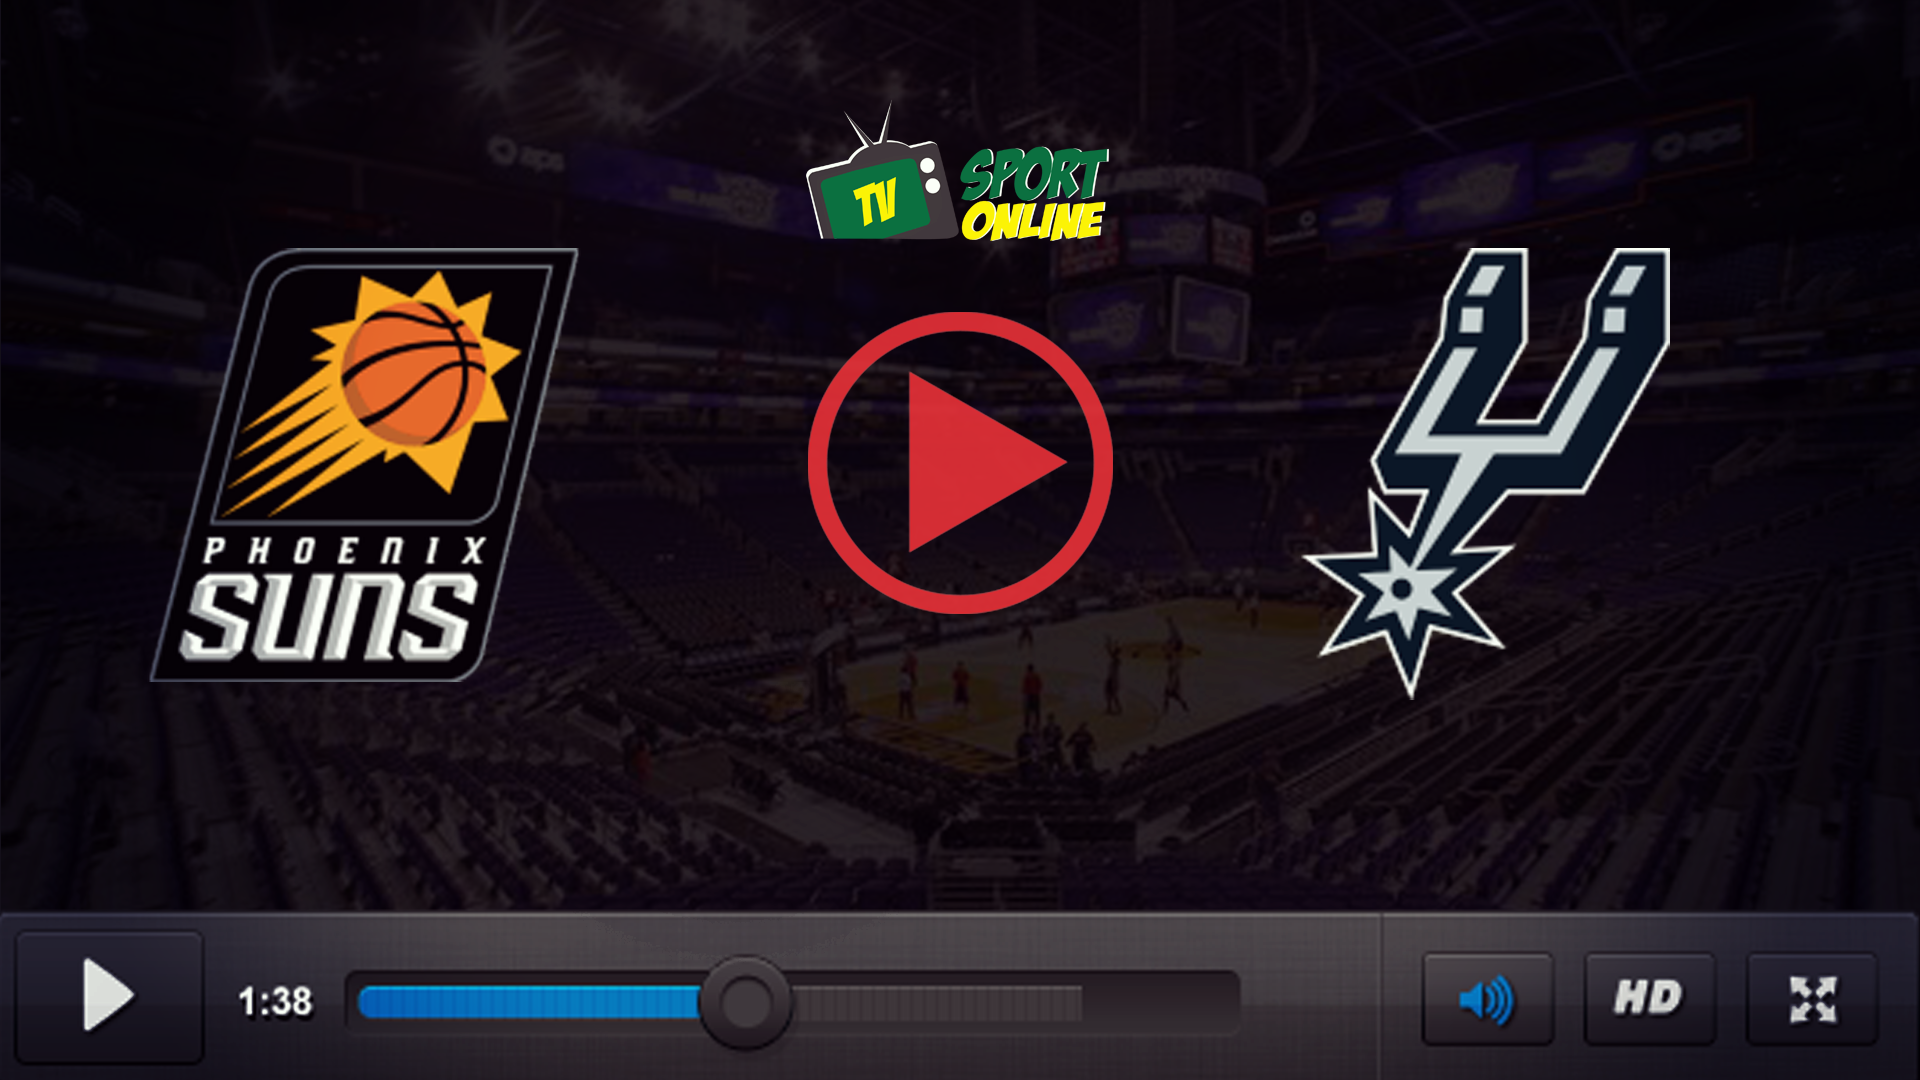 Watch Live Stream Phoenix Suns – San Antonio Spurs